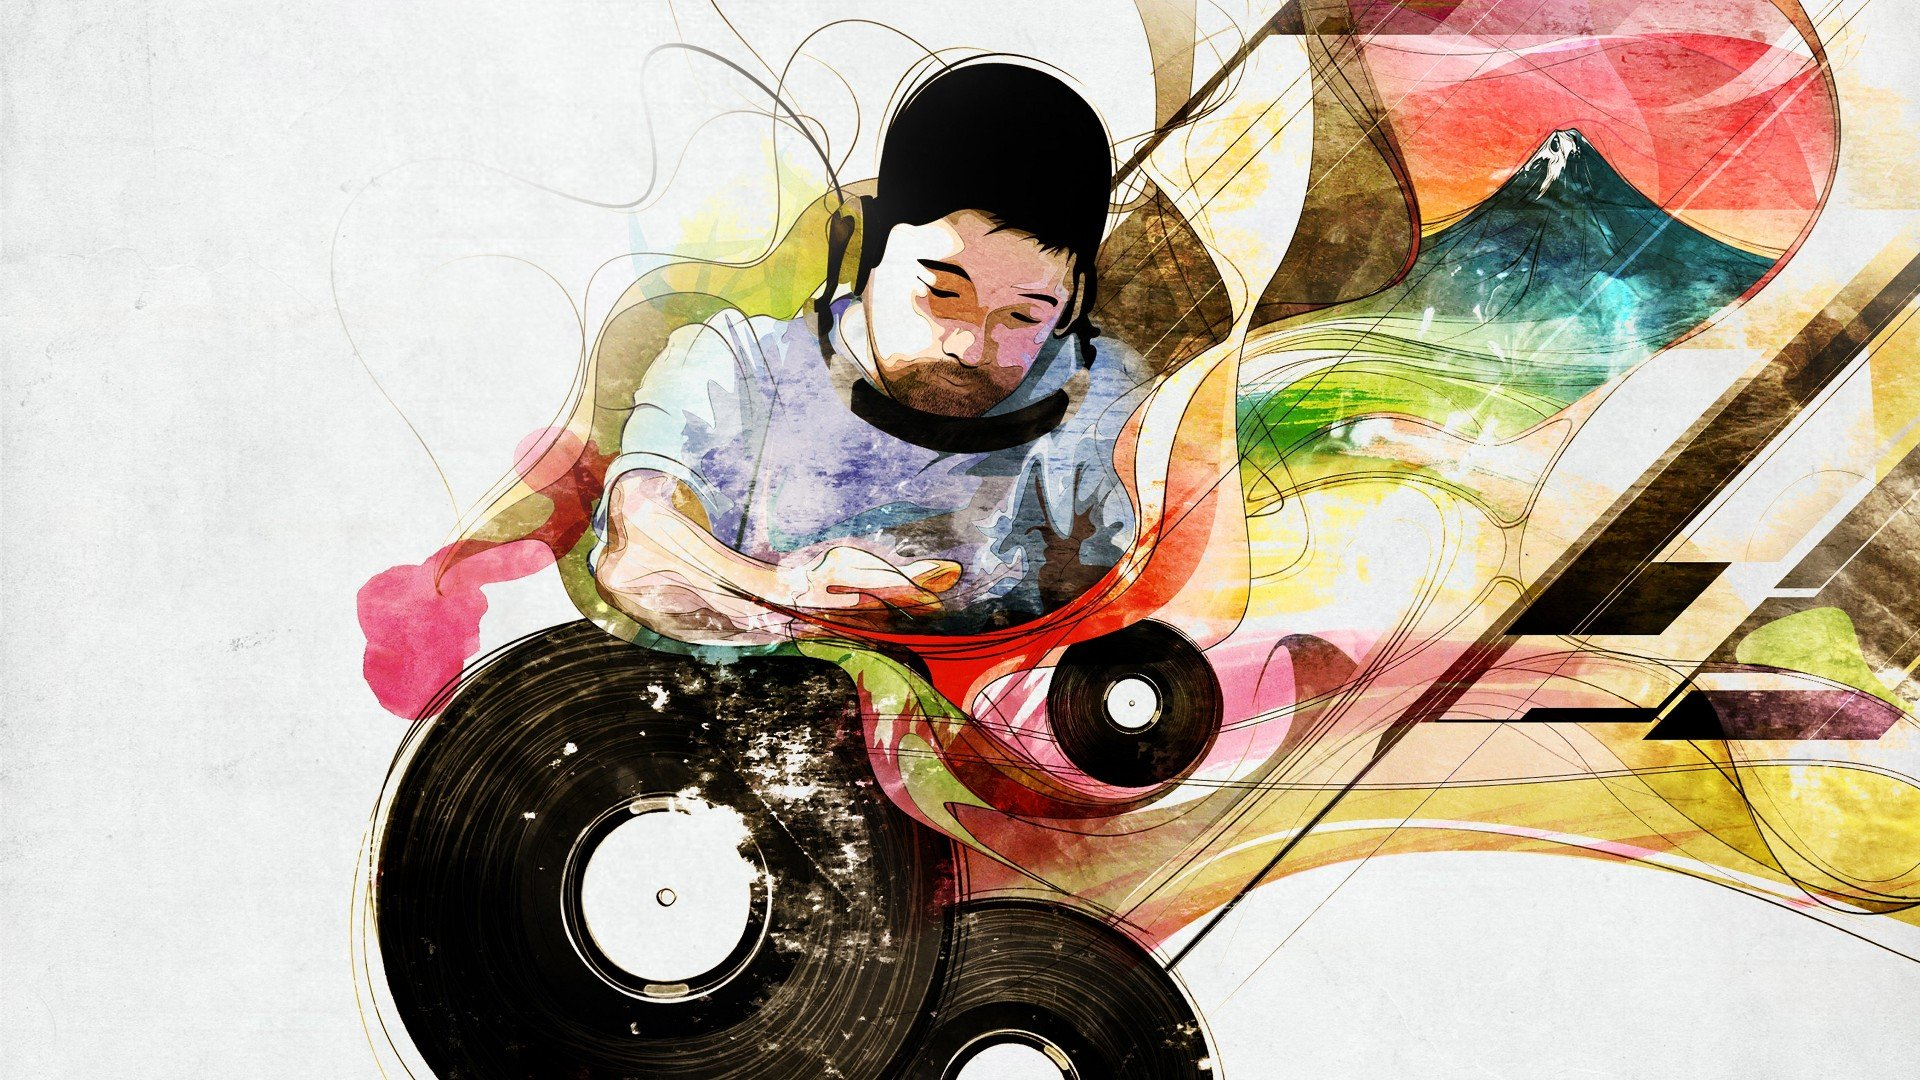 Free Nujabes high quality wallpaper ID:408918 for full hd 1920x1080 desktop